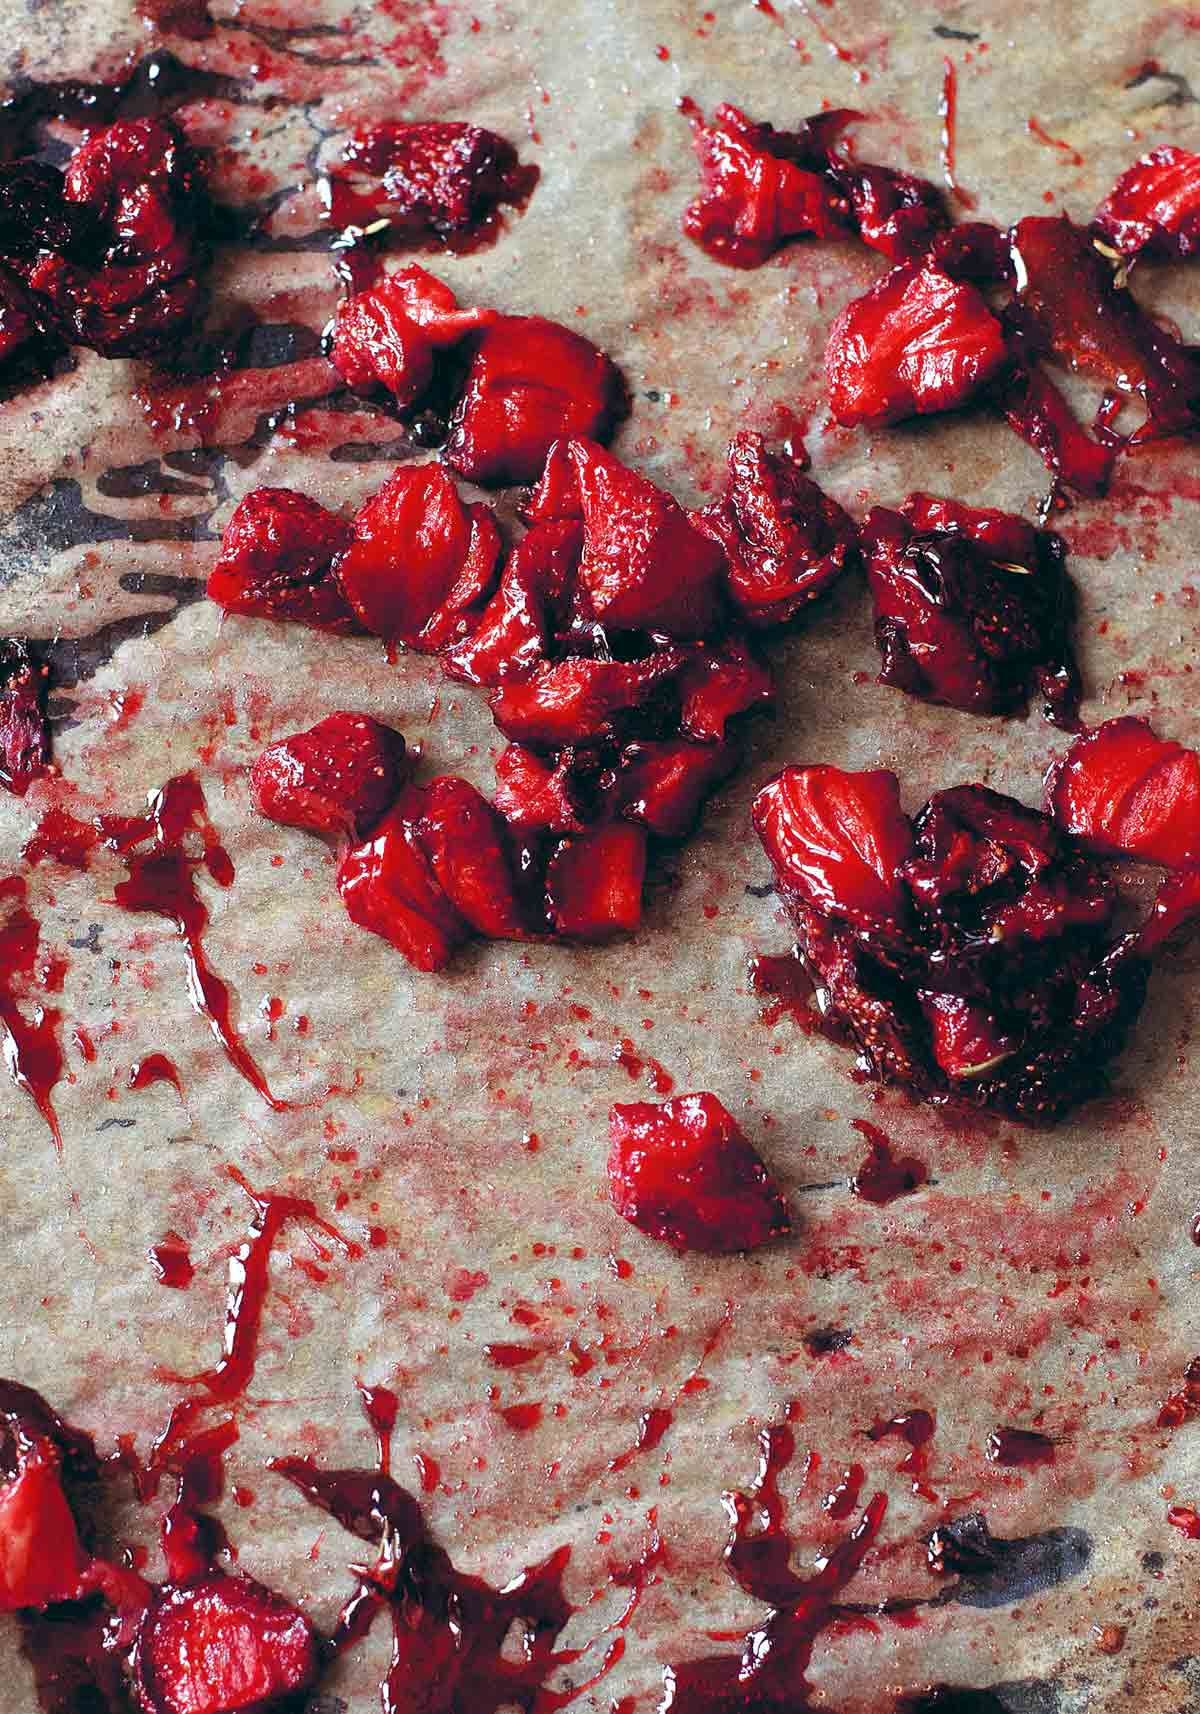 Chunks of roasted strawberries on a sheet of parchment.